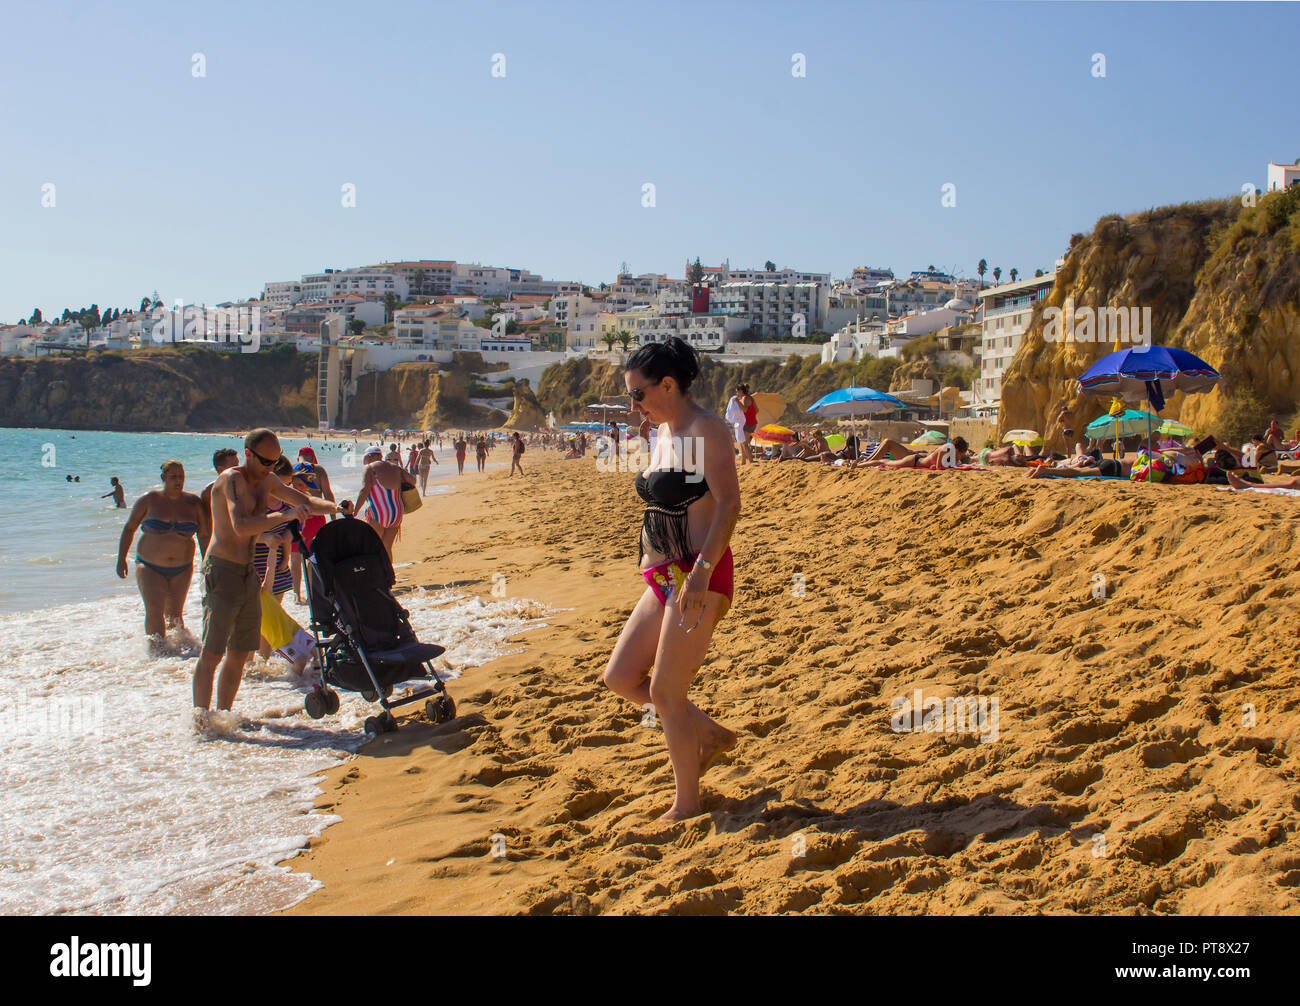 28 September 2018 A view along the crowded Praia Dos Pescadores toward the Old Town Albuferia on the Algarve Portugal with sun beds and sand - Stock Image